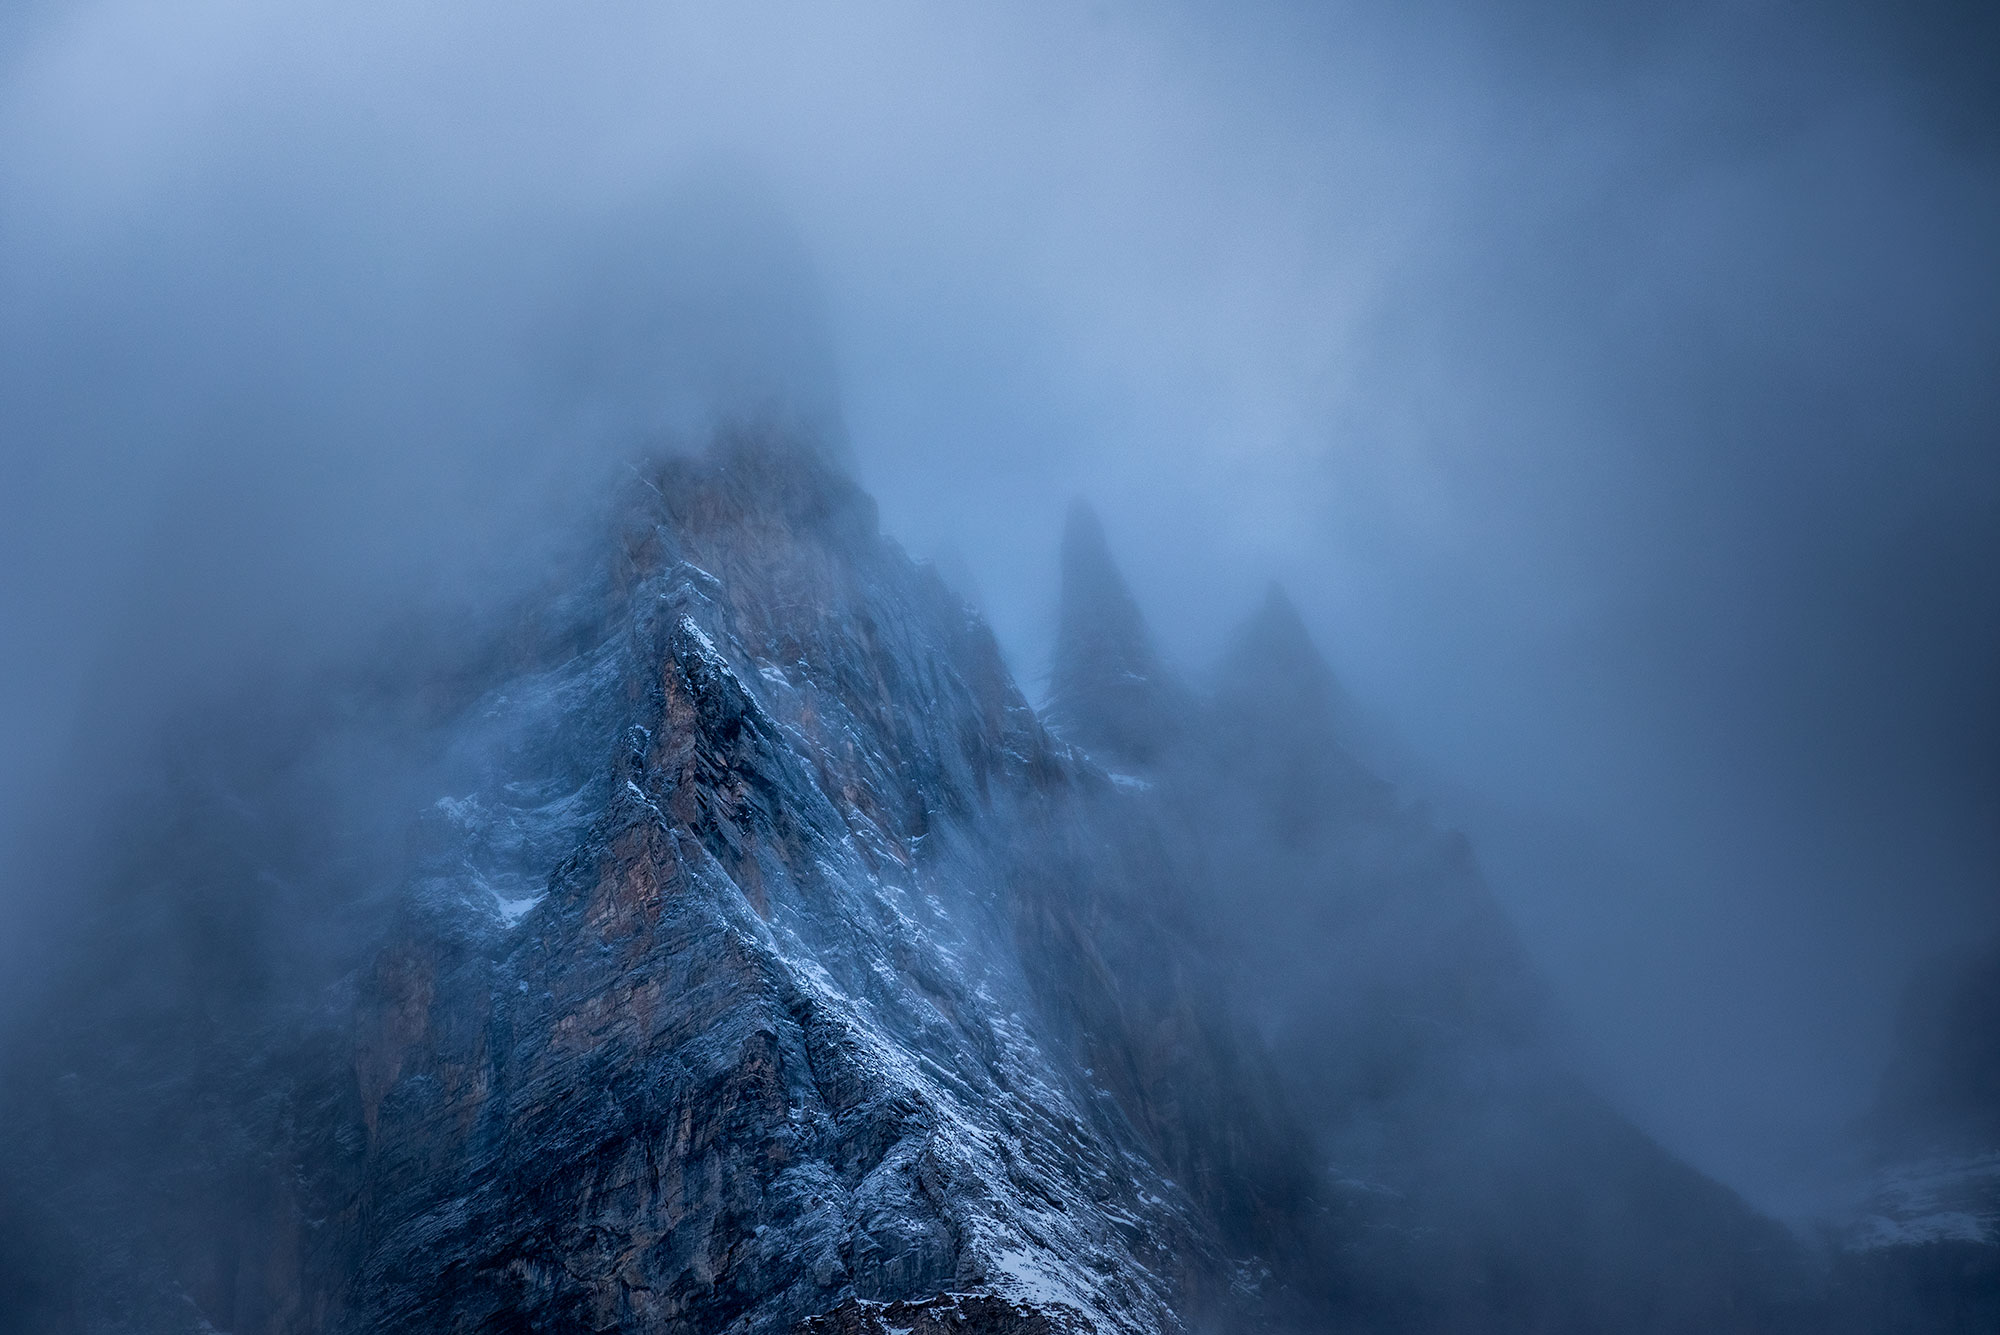 Moody and dramatic landscape photography of the Swiss Alps in the fog. Image by Jennifer Esseiva.